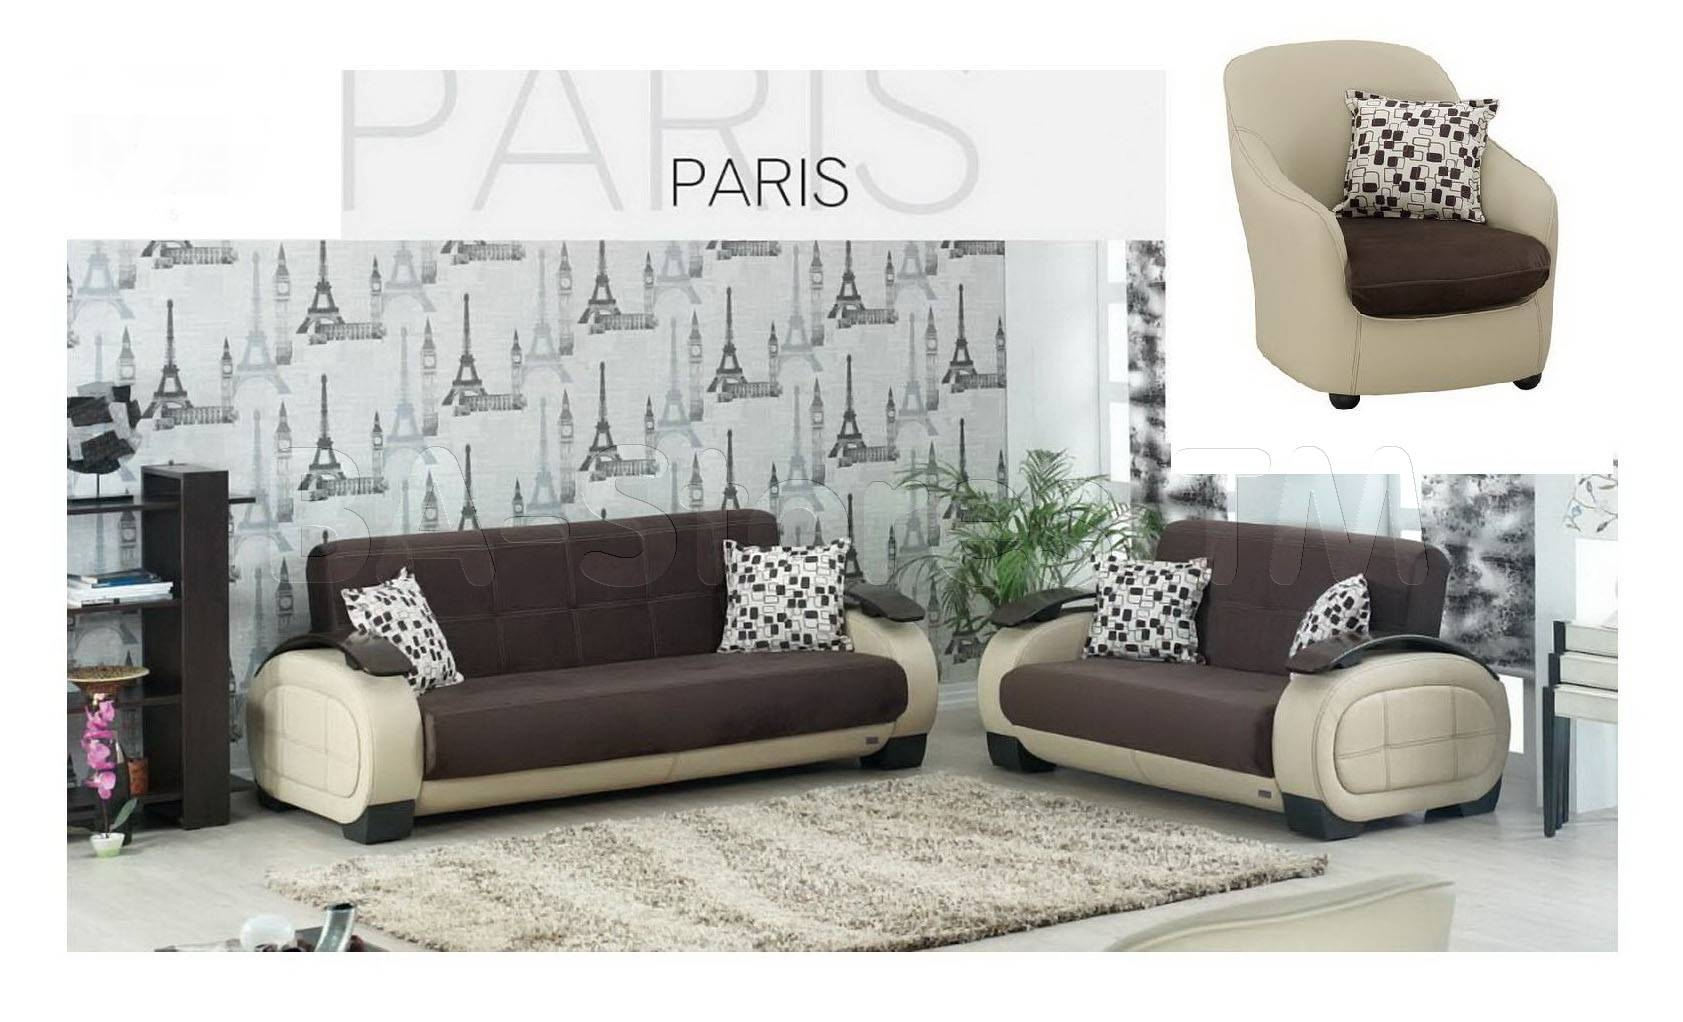 664D31585D6E363D20982Dcc6Ecd90C4 For Elegant Sofa Chair - Home in Elegant Sofas And Chairs (Image 2 of 15)